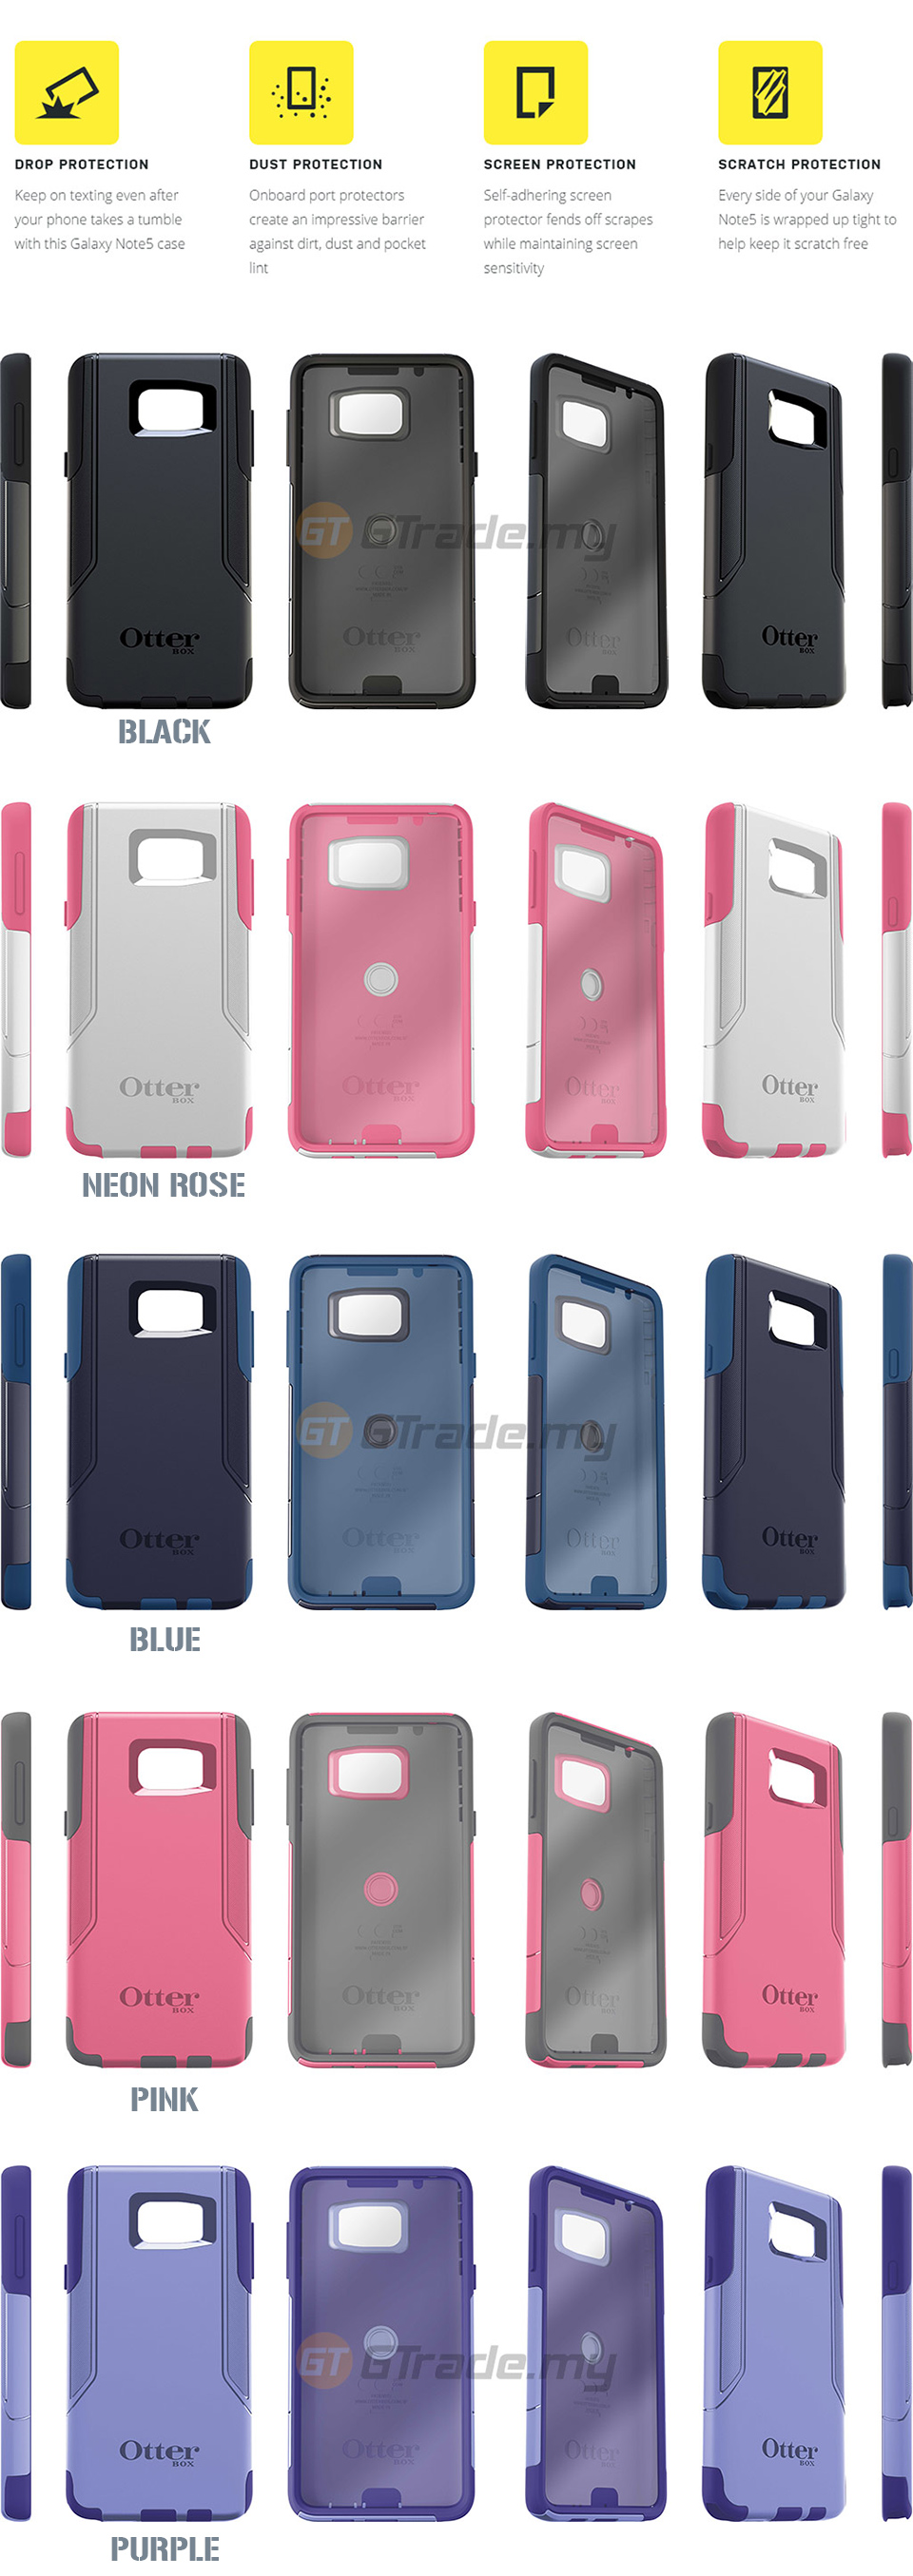 otterbox-commuter-bump-drop-scrape-protect-case-samsung-galaxy-note-5-p